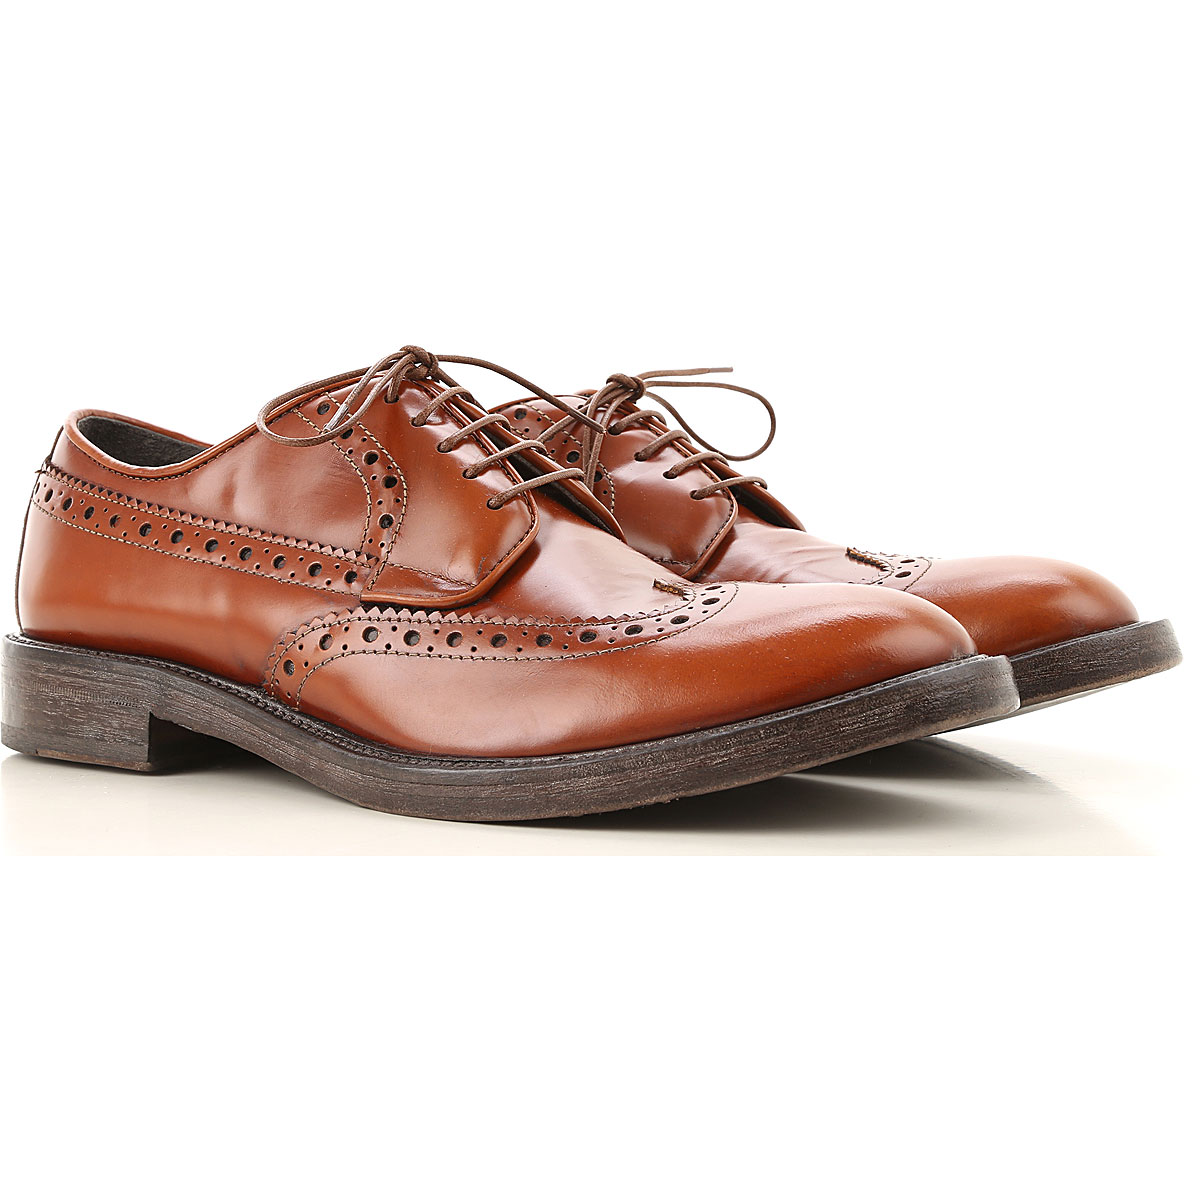 Moma Lace Up Shoes for Men Oxfords, Derbies and Brogues On Sale, brown leather, Leather, 2019, 10 7.5 8 9